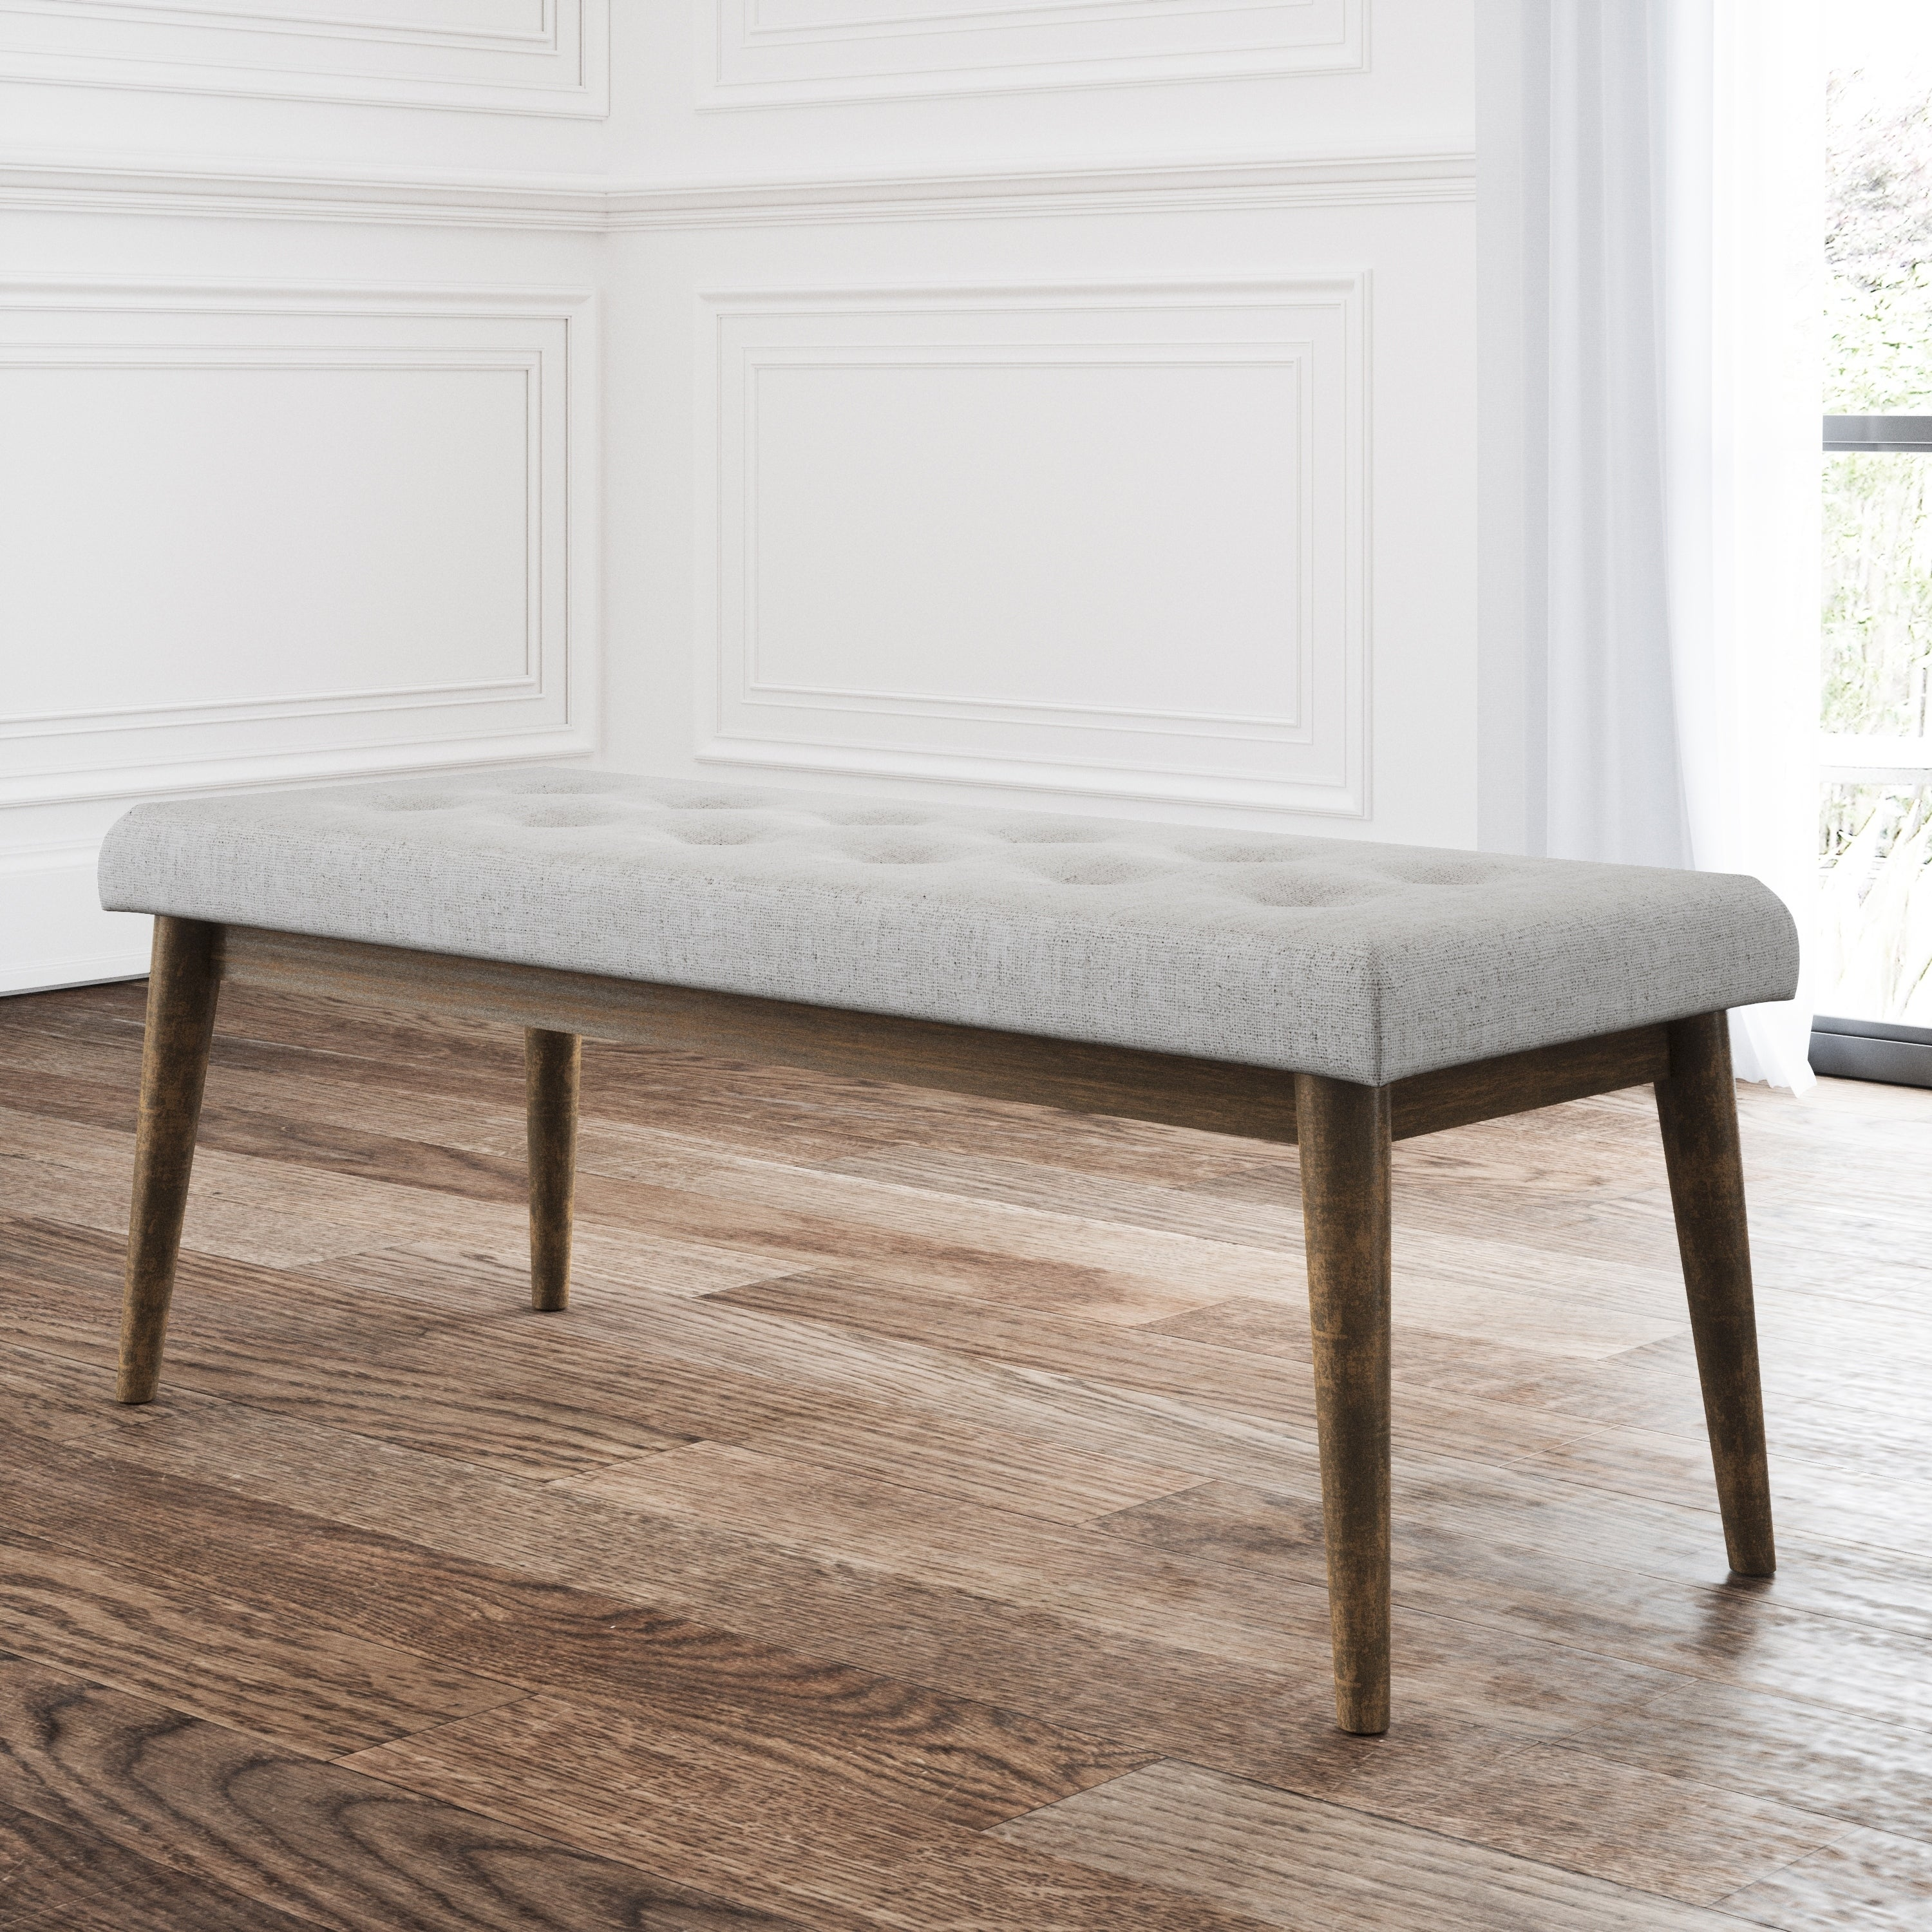 Buy Entryway Mid Century Modern Benches Settees Online At